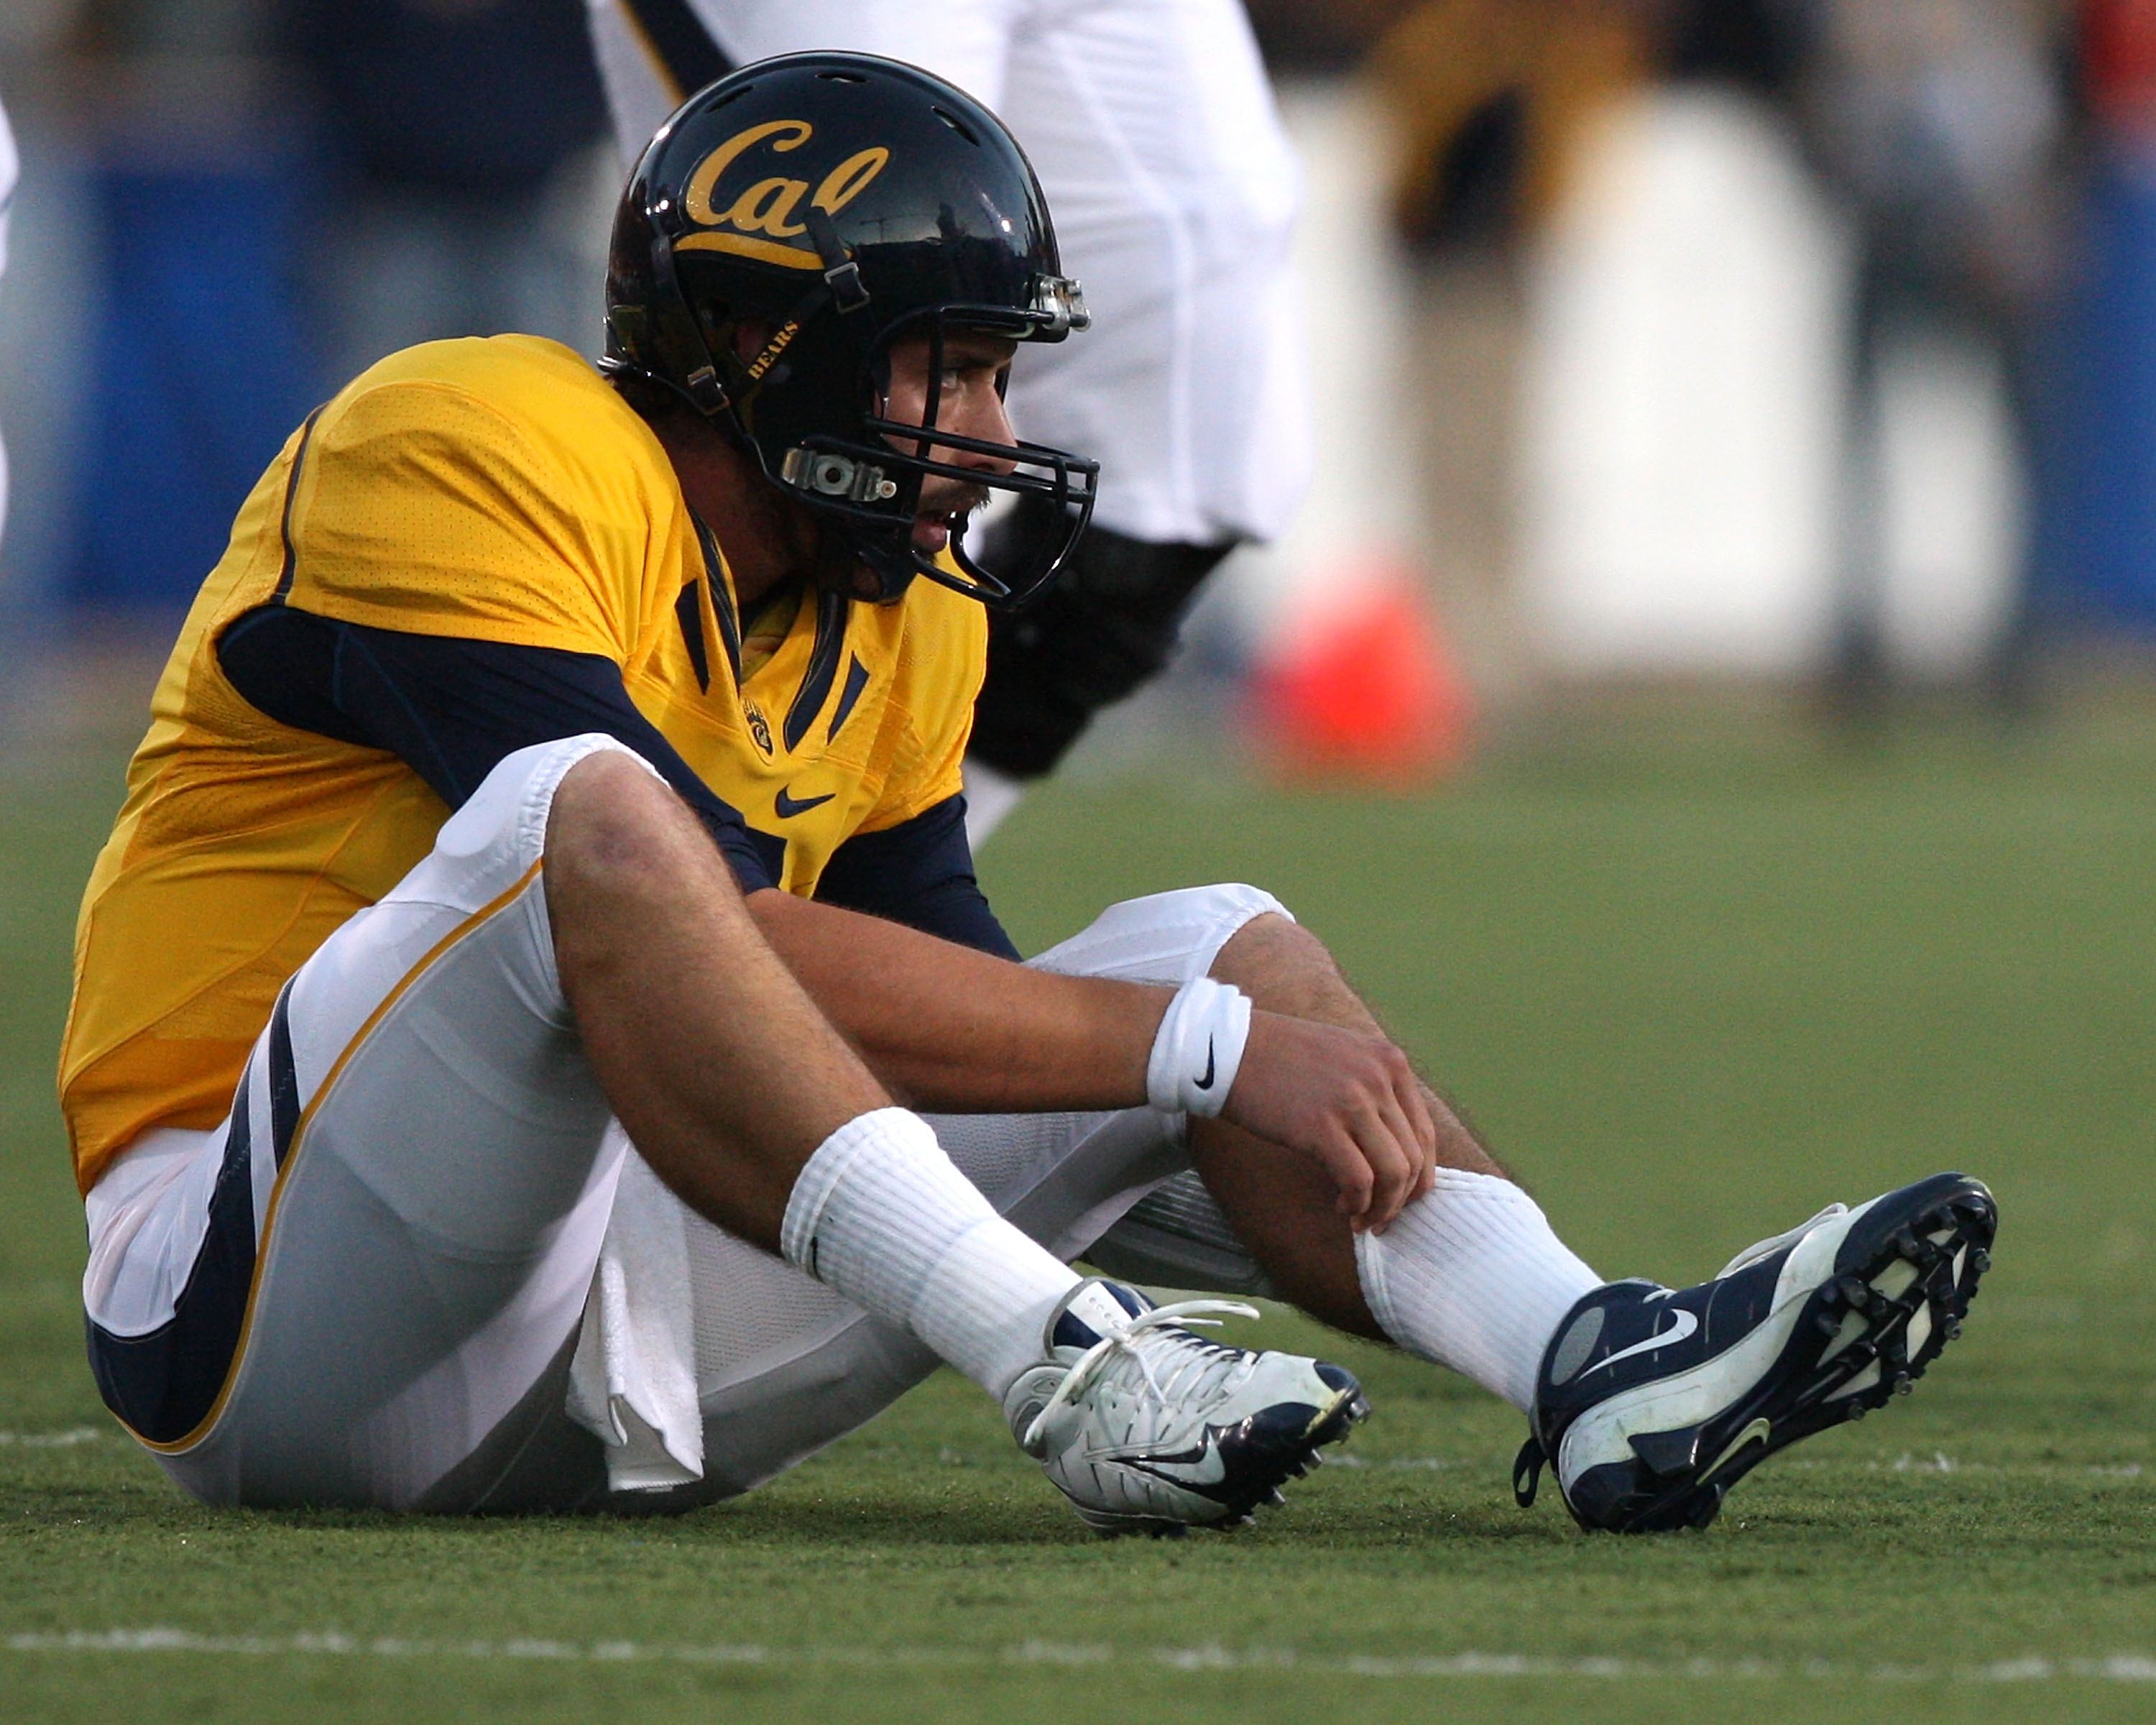 BERKELEY, CA - NOVEMBER 07:  Kevin Riley #13 of the California Golden Bears sits on the ground against the Oregon State Beavers at California Memorial Stadium on November 7, 2009 in Berkeley, California.  (Photo by Jed Jacobsohn/Getty Images)